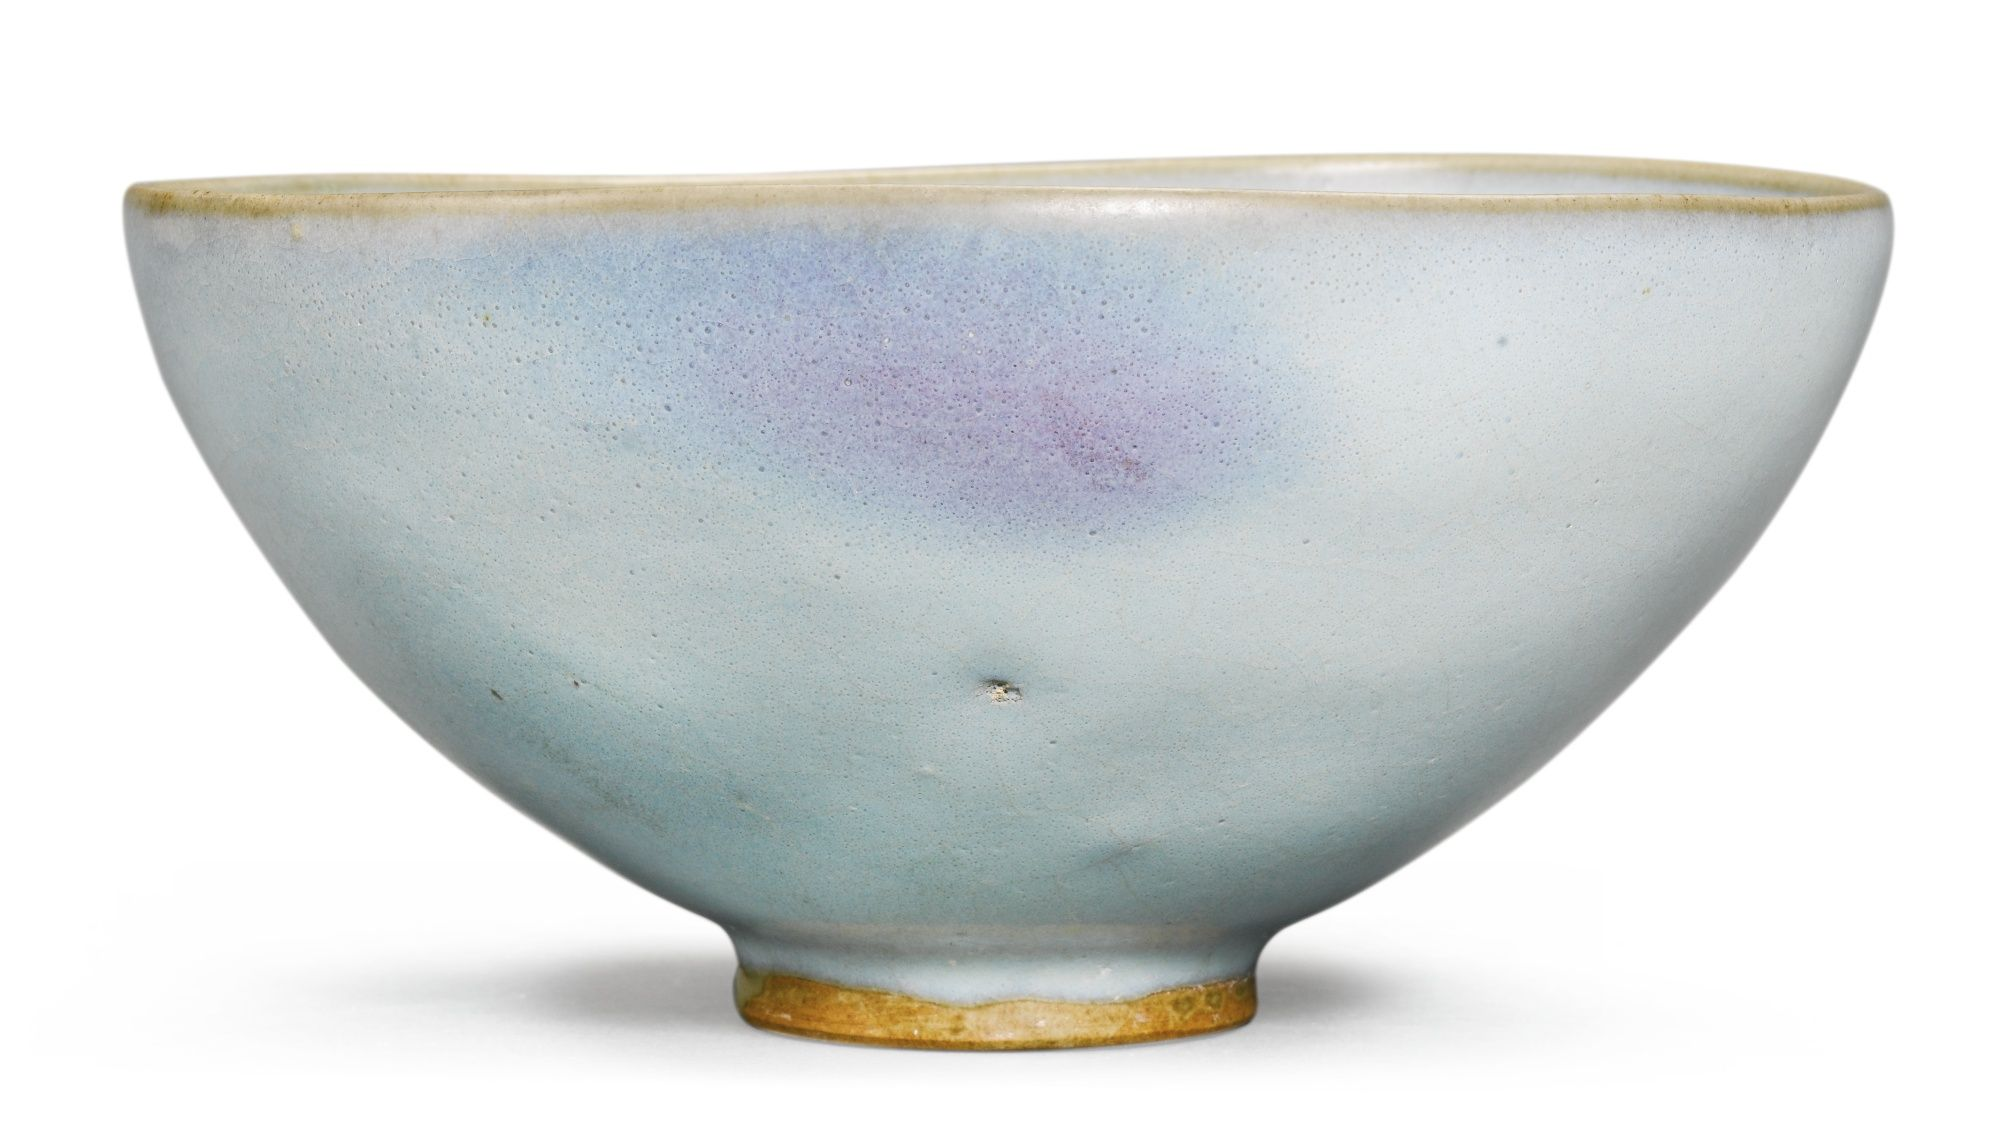 A LARGE PURPLE-SPLASHED 'JUN' BOWL SONG DYNASTY More At FOSTERGINGER @ Pinterest